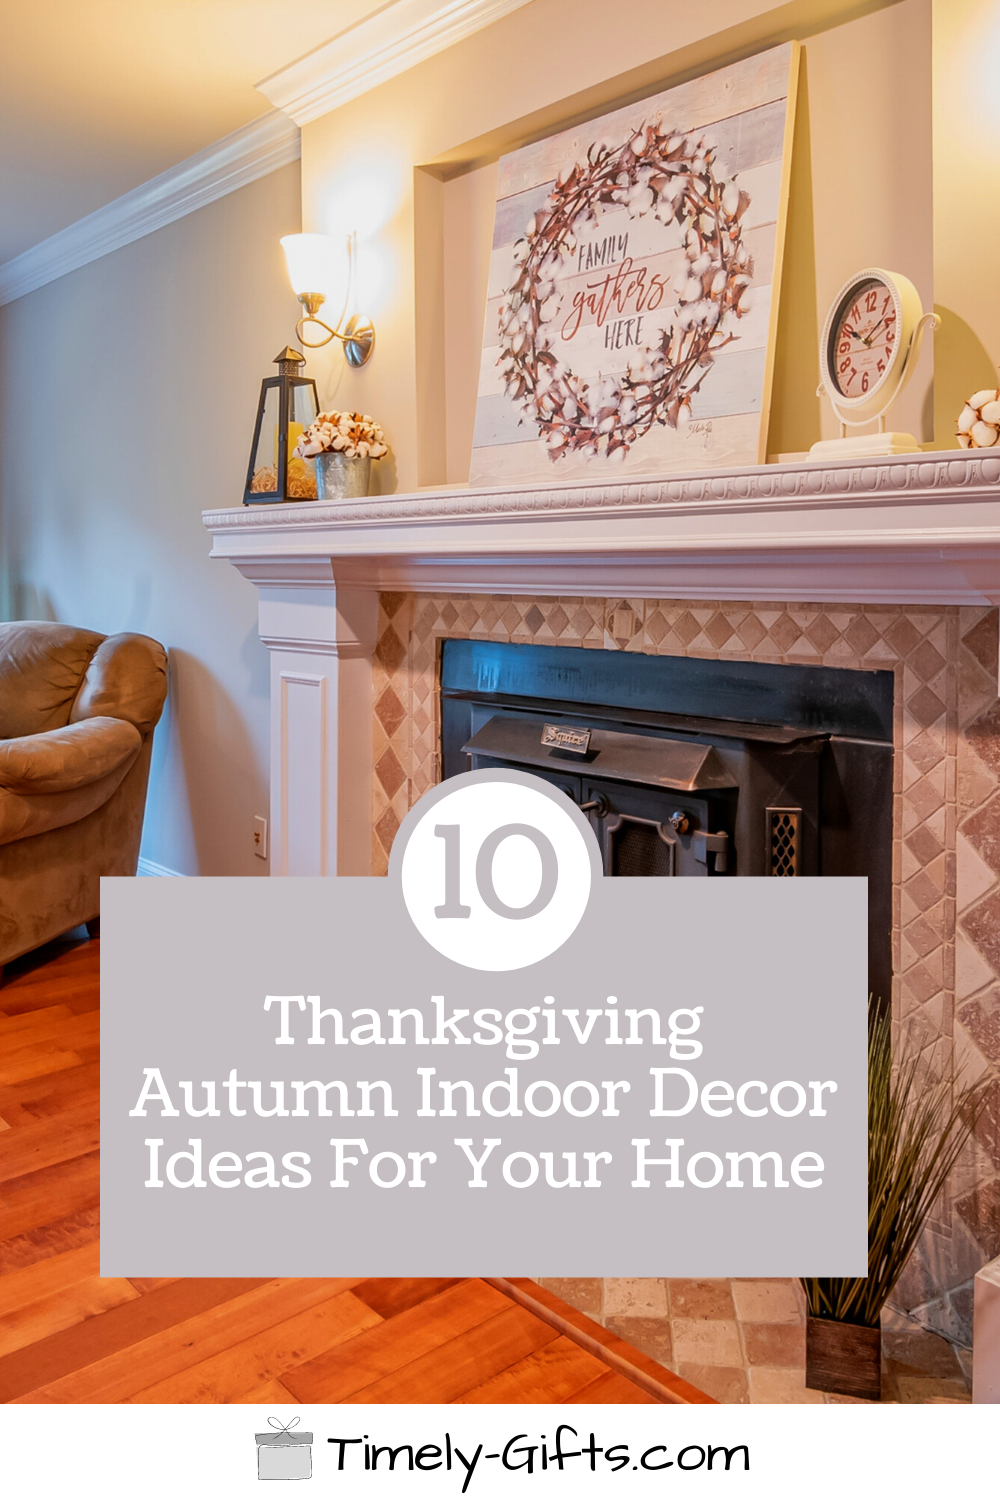 Check out these thanksgiving indoor decor ideas? This article will have 10 festive indoor decor ideas for thanksgiving and autumn! See these great decor ideas to make your house feel more like autumn and fall! #thanksgiving #thanksgivingdecor #falldecor #autumndecor #indoordecor #decorideas #seasondecor #pumpkindecor #fundecor #easydecor #holidaydecor #fauxdecor